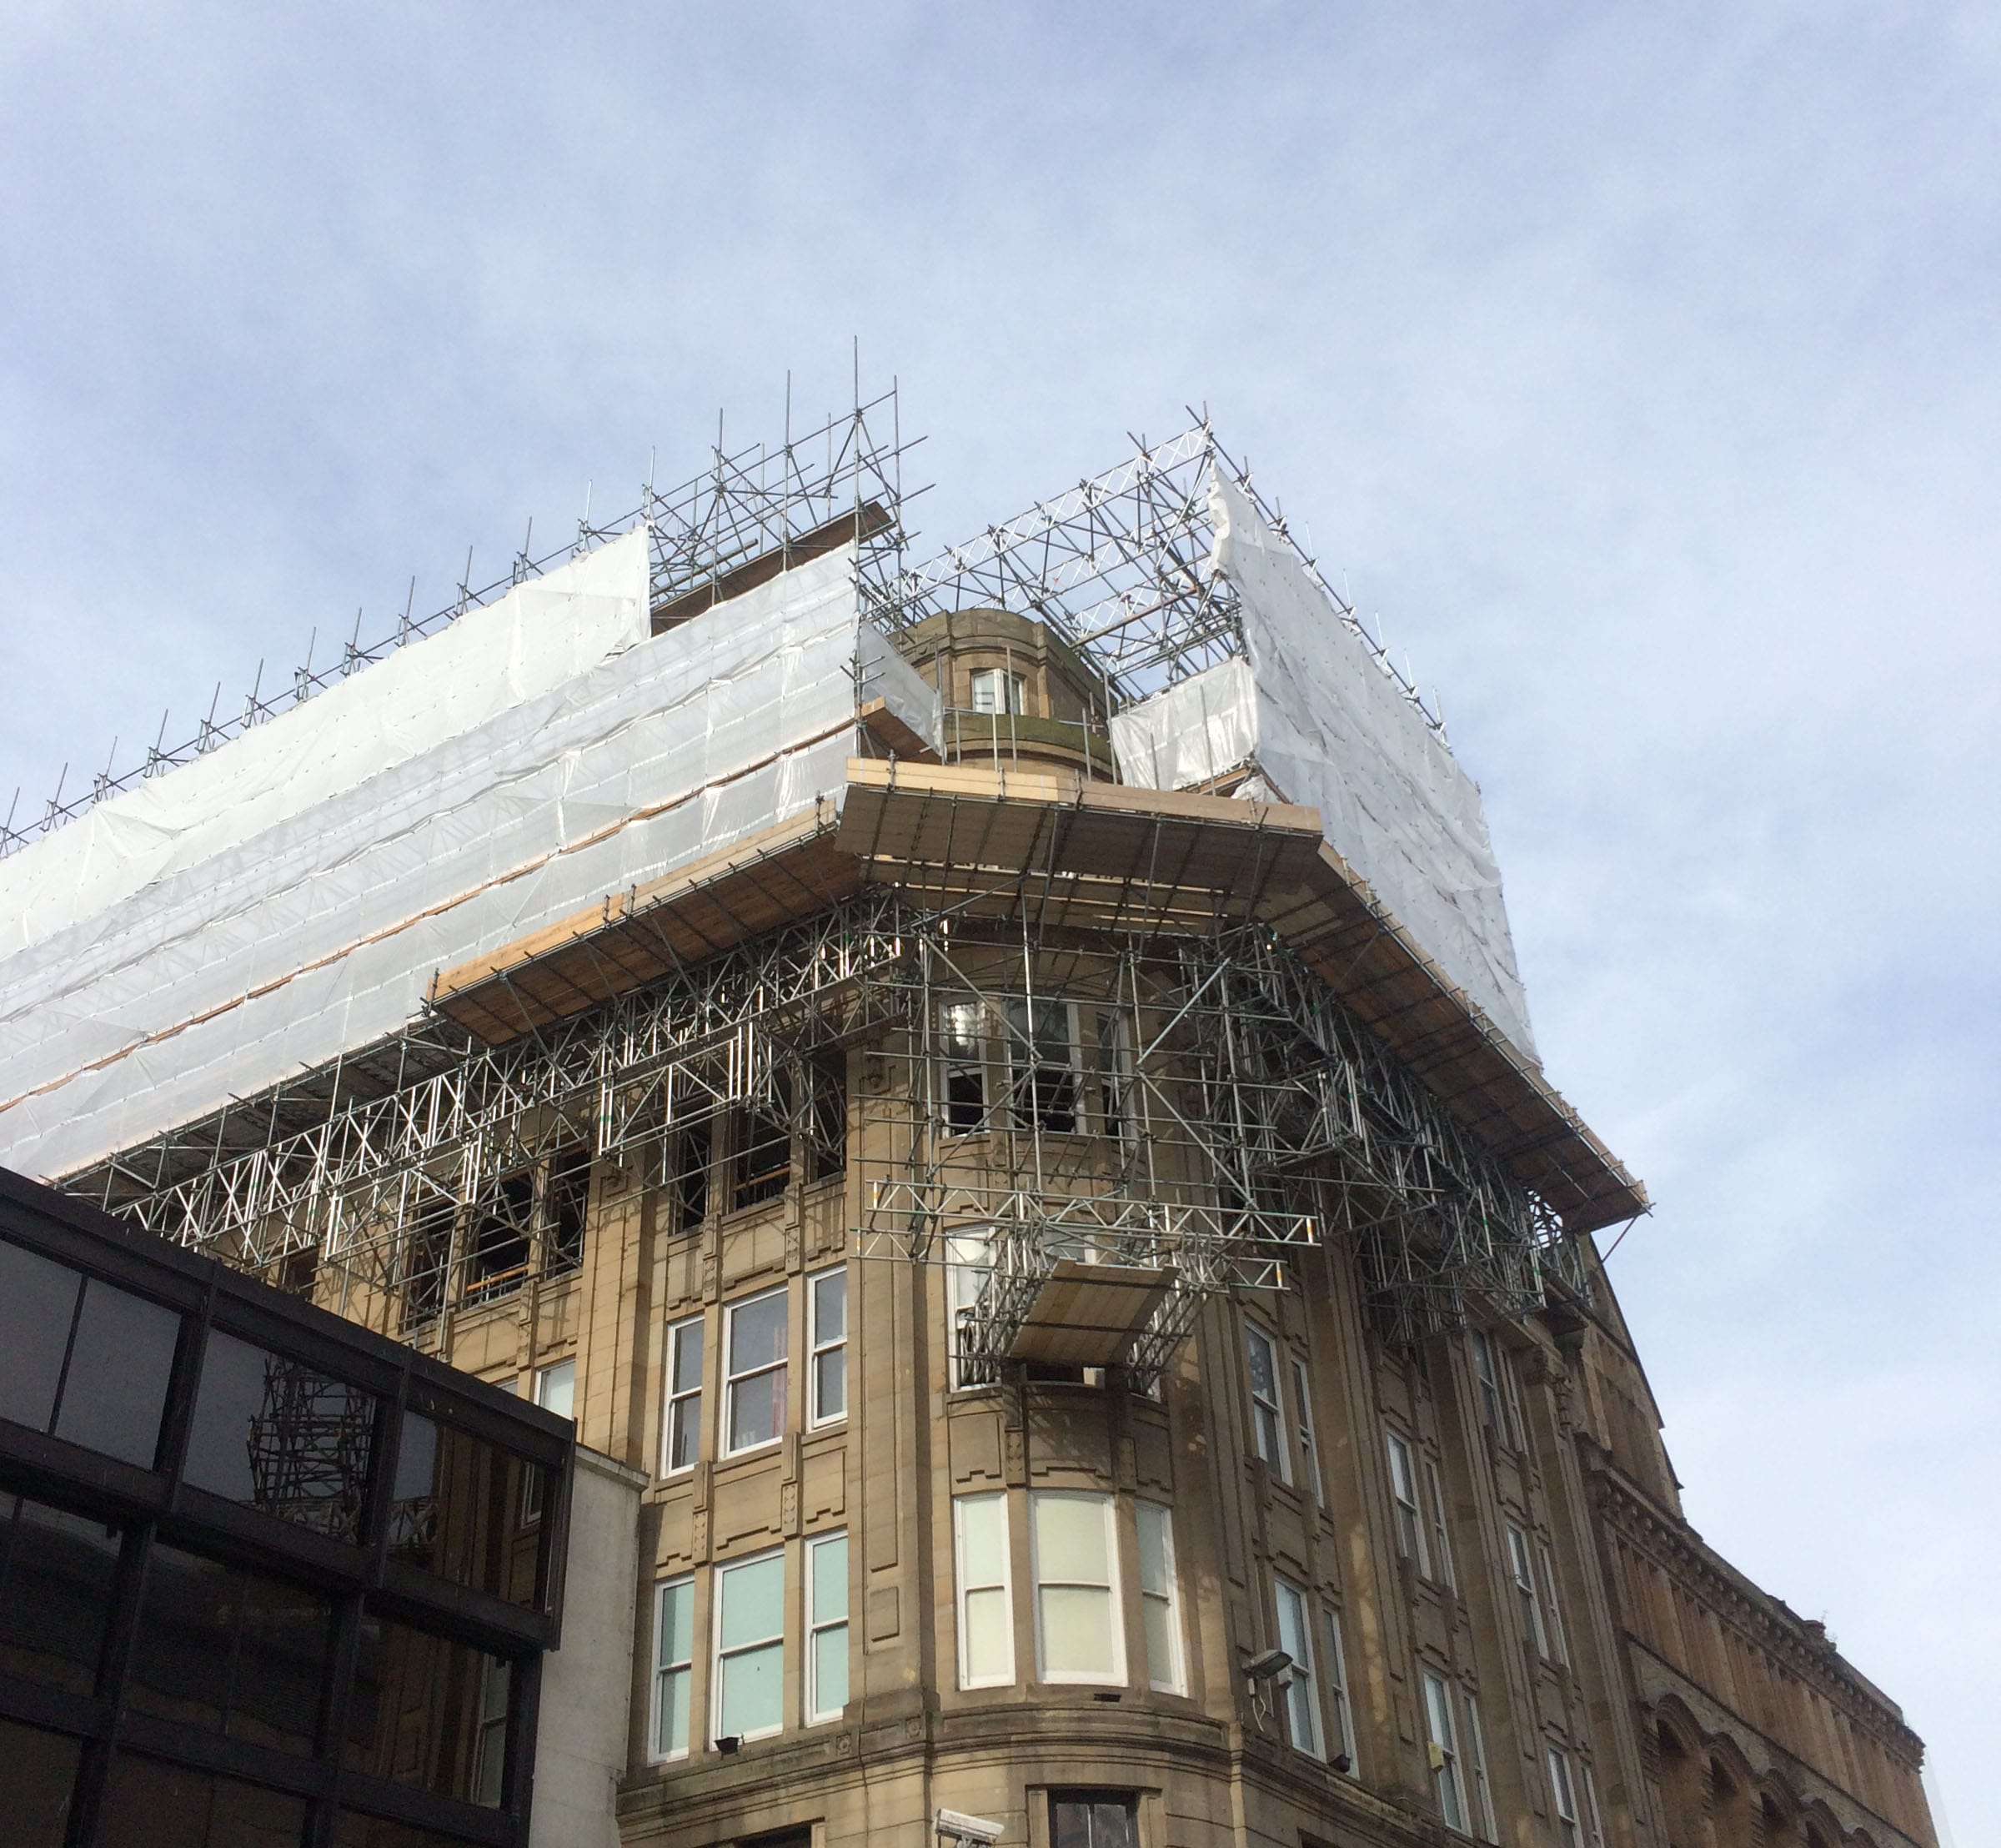 Coopers building cantilevered scaffold for refurbishment work